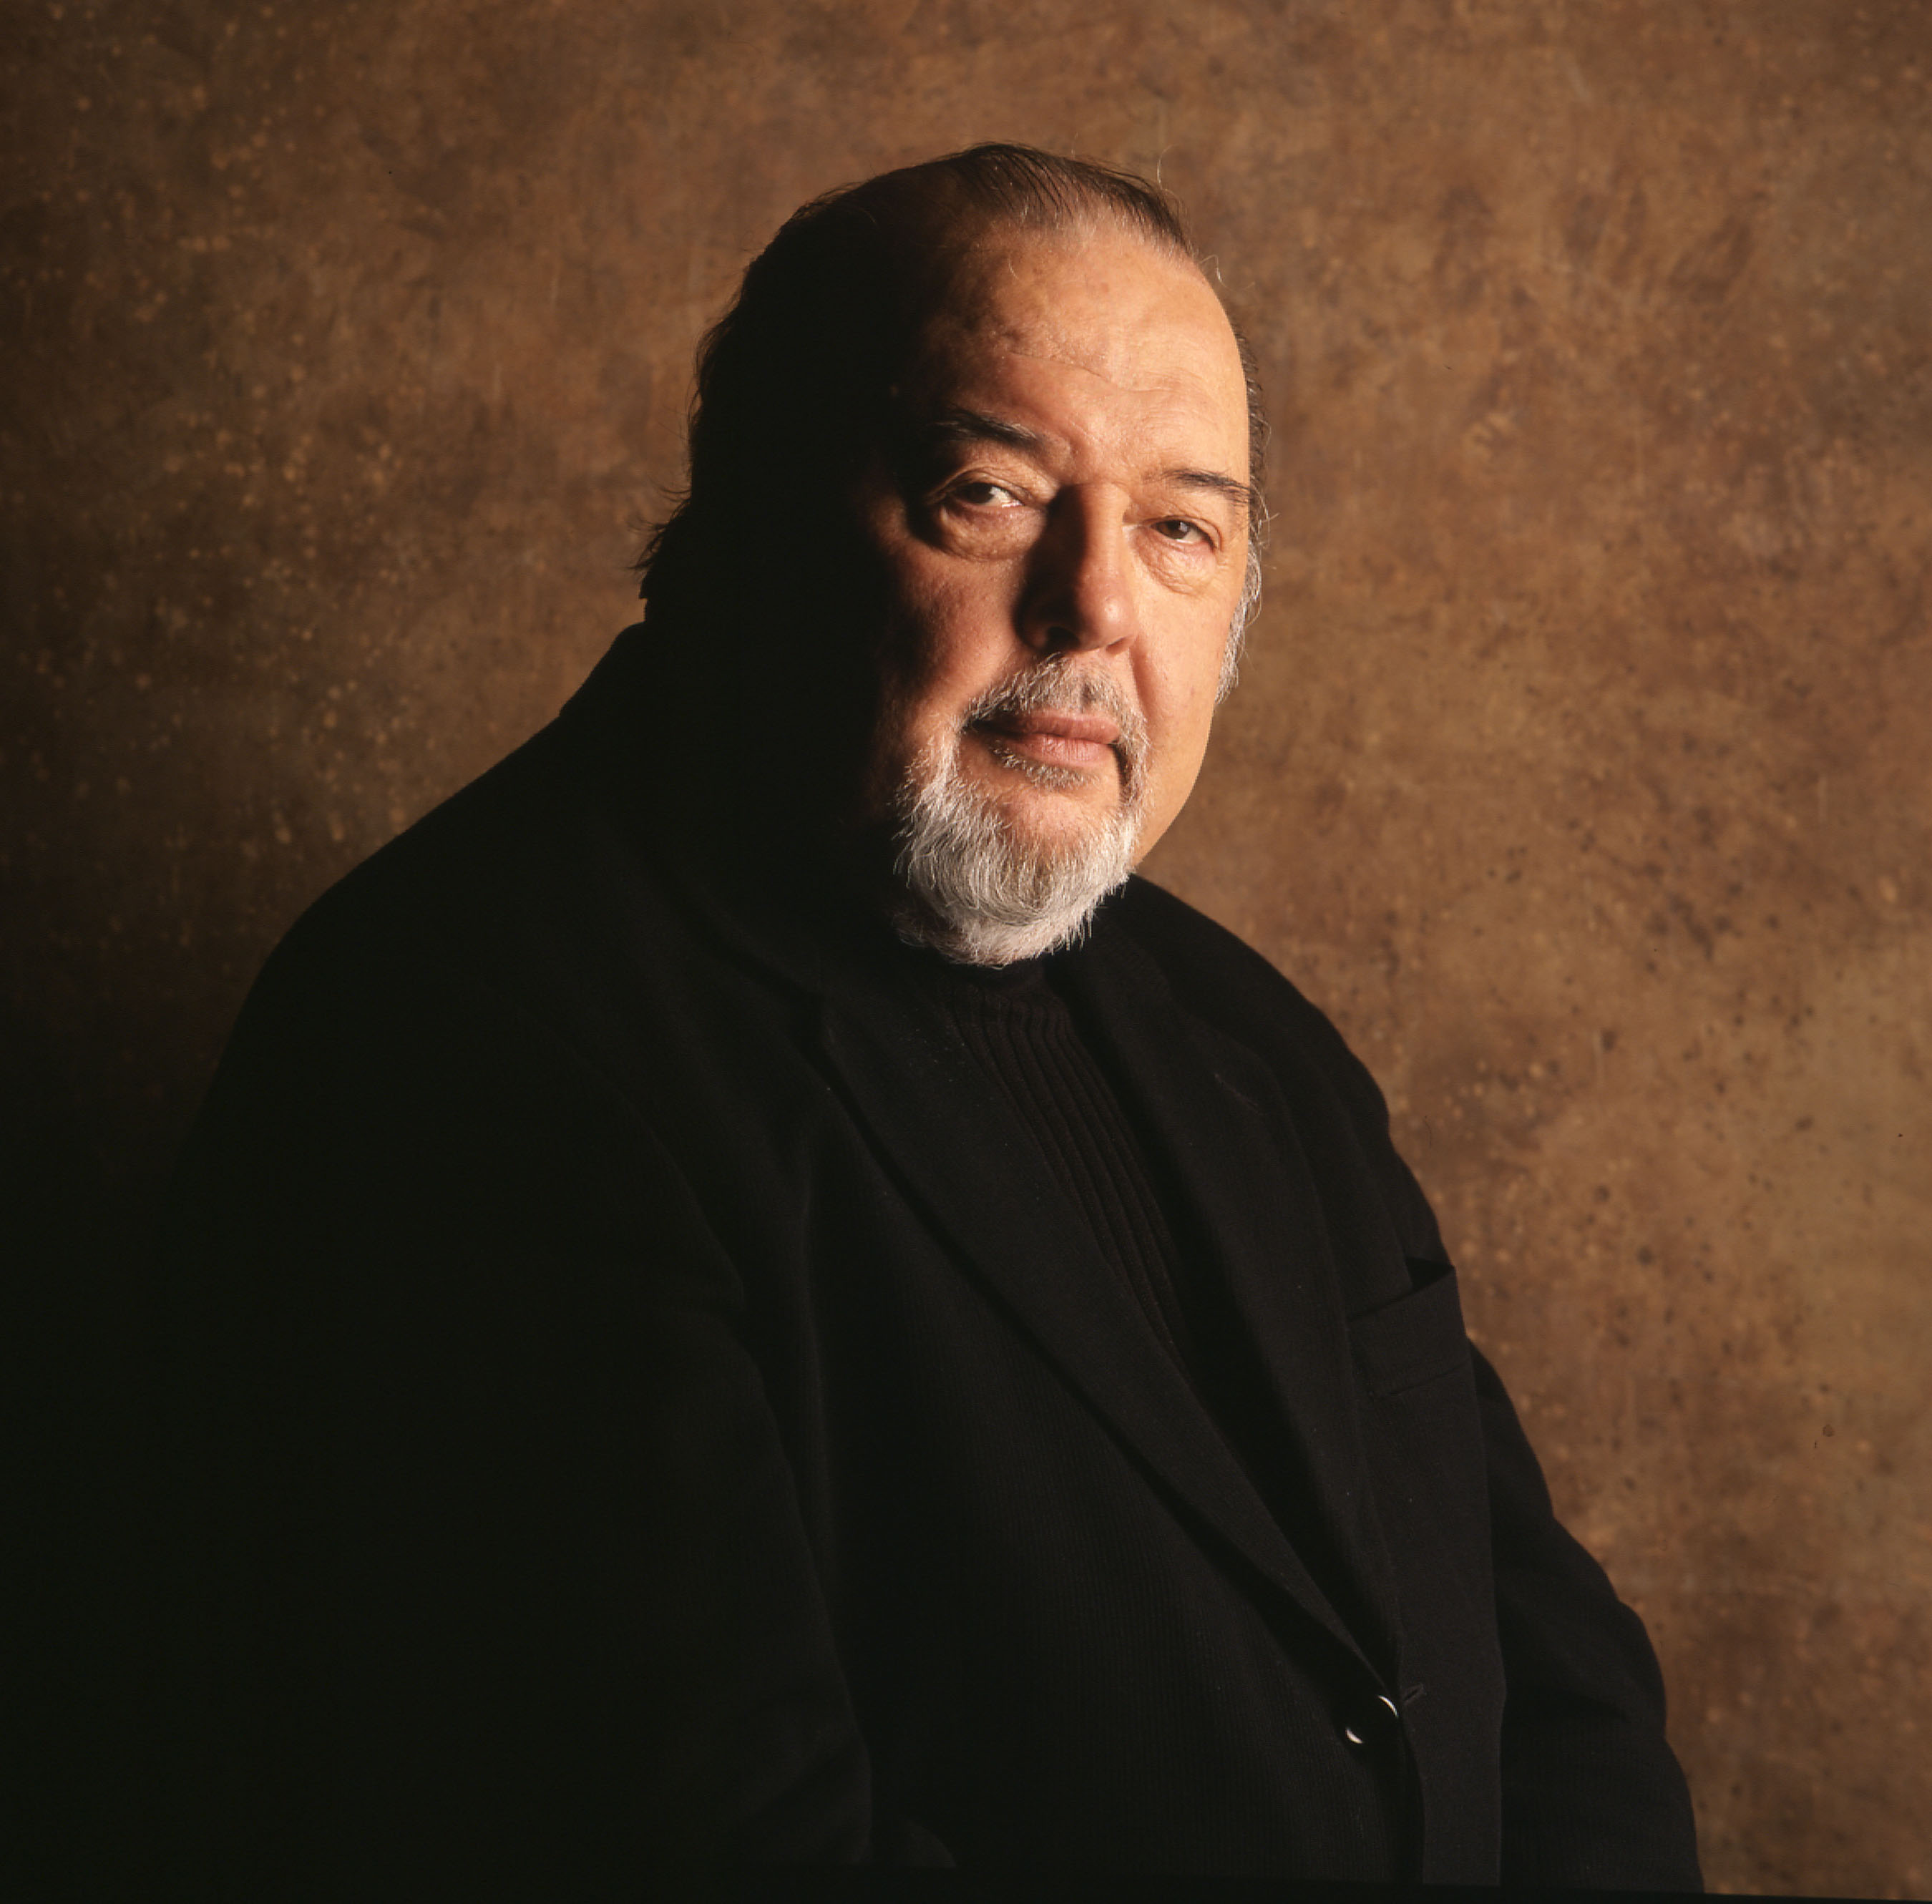 384136 01: Sir Peter Hall poses for a portrait August 5, 2000 in Houston, Texas. Hall is a Playwrite who has won two Tony Awards and is the former artistic director of the Royal National Theatre. (Photo by Pam Francis/Liaison)